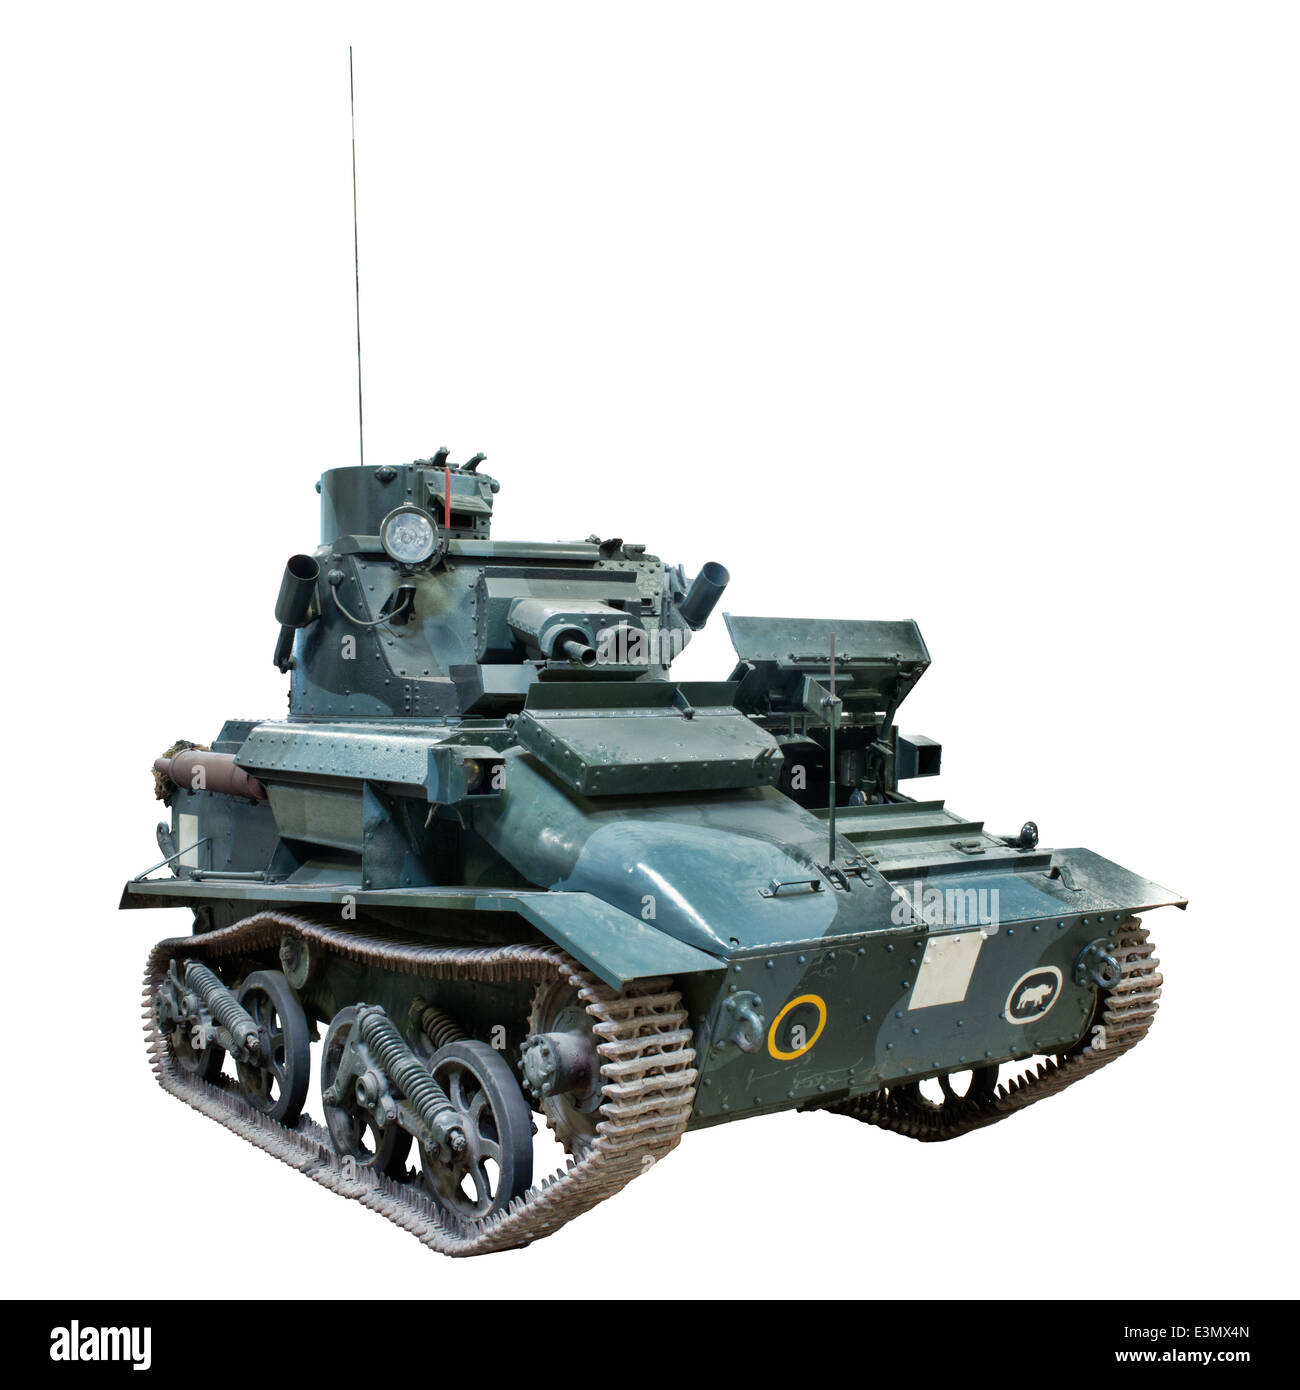 A Cut out of a British Army Vickers - Armstrong Mk IV light tank used during WW2 by allied forces - Stock Image